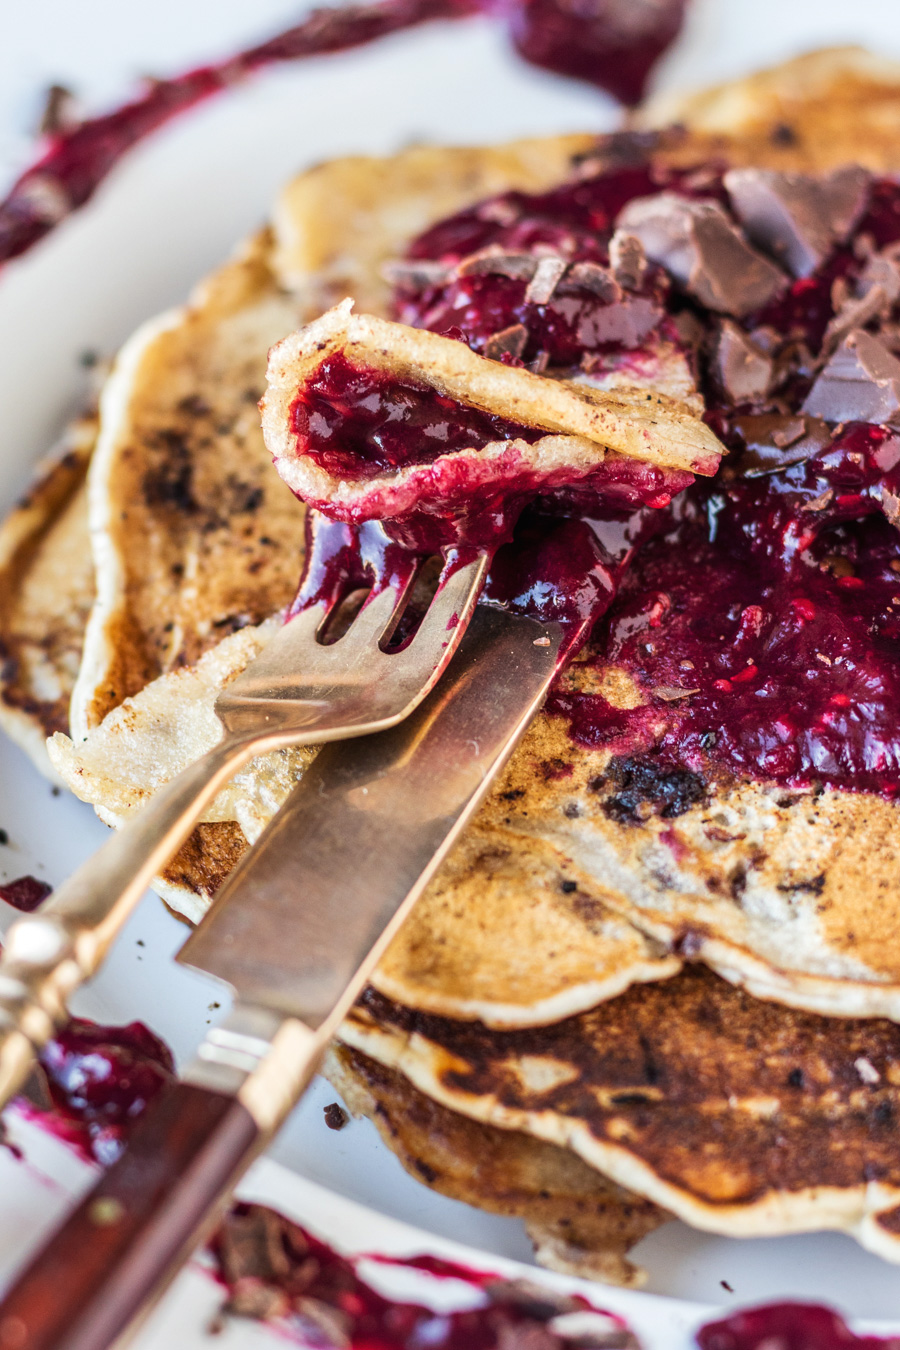 Vegan Chocolate Chip Pancakes With Smooth & Zingy Mixed Berry Sauce